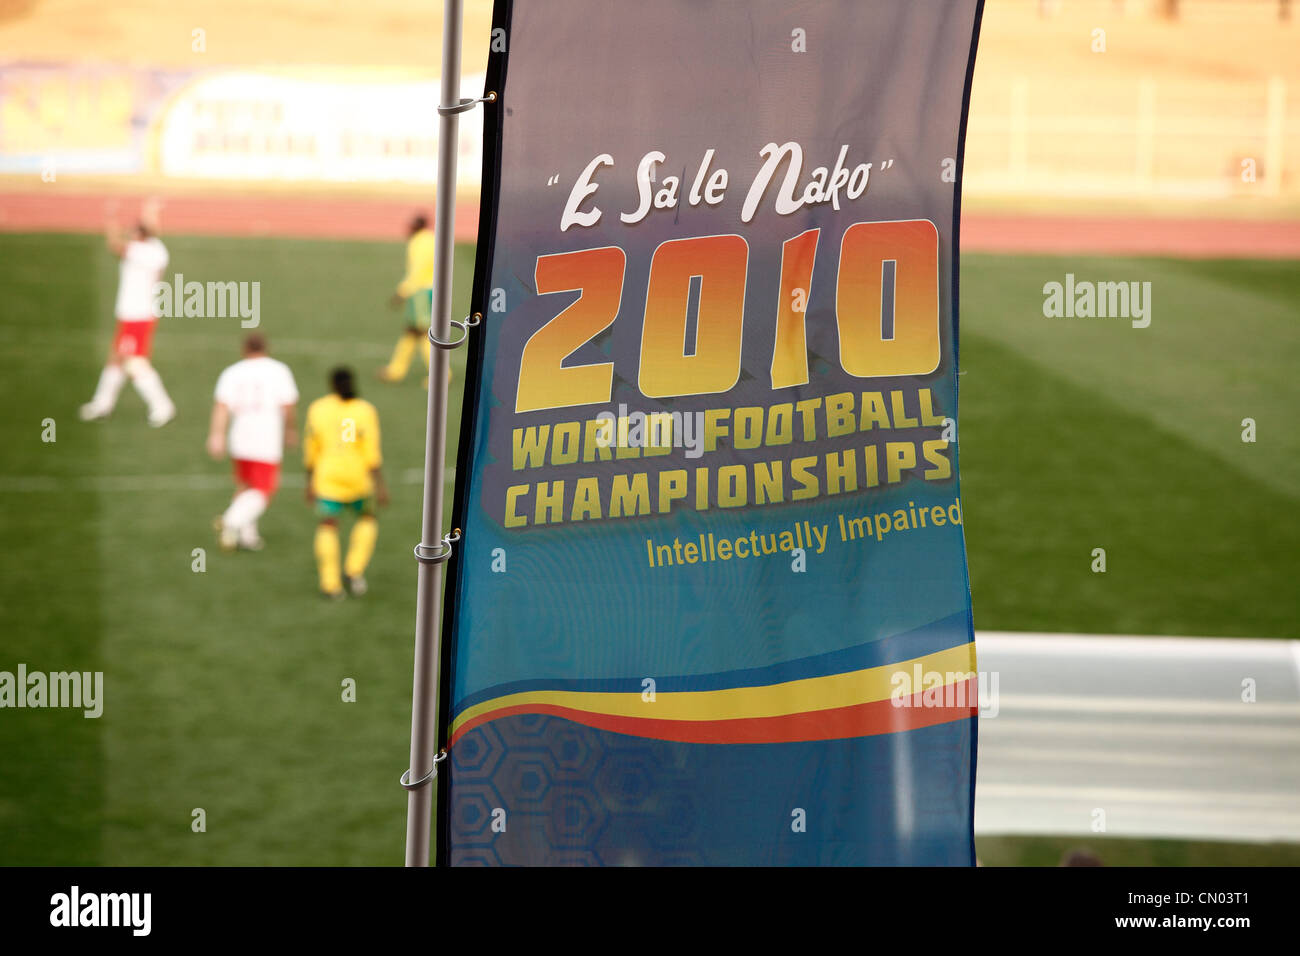 2010 World Football Championships for the Intelectually Impaired People flag in Limpopo, RSA - Stock Image